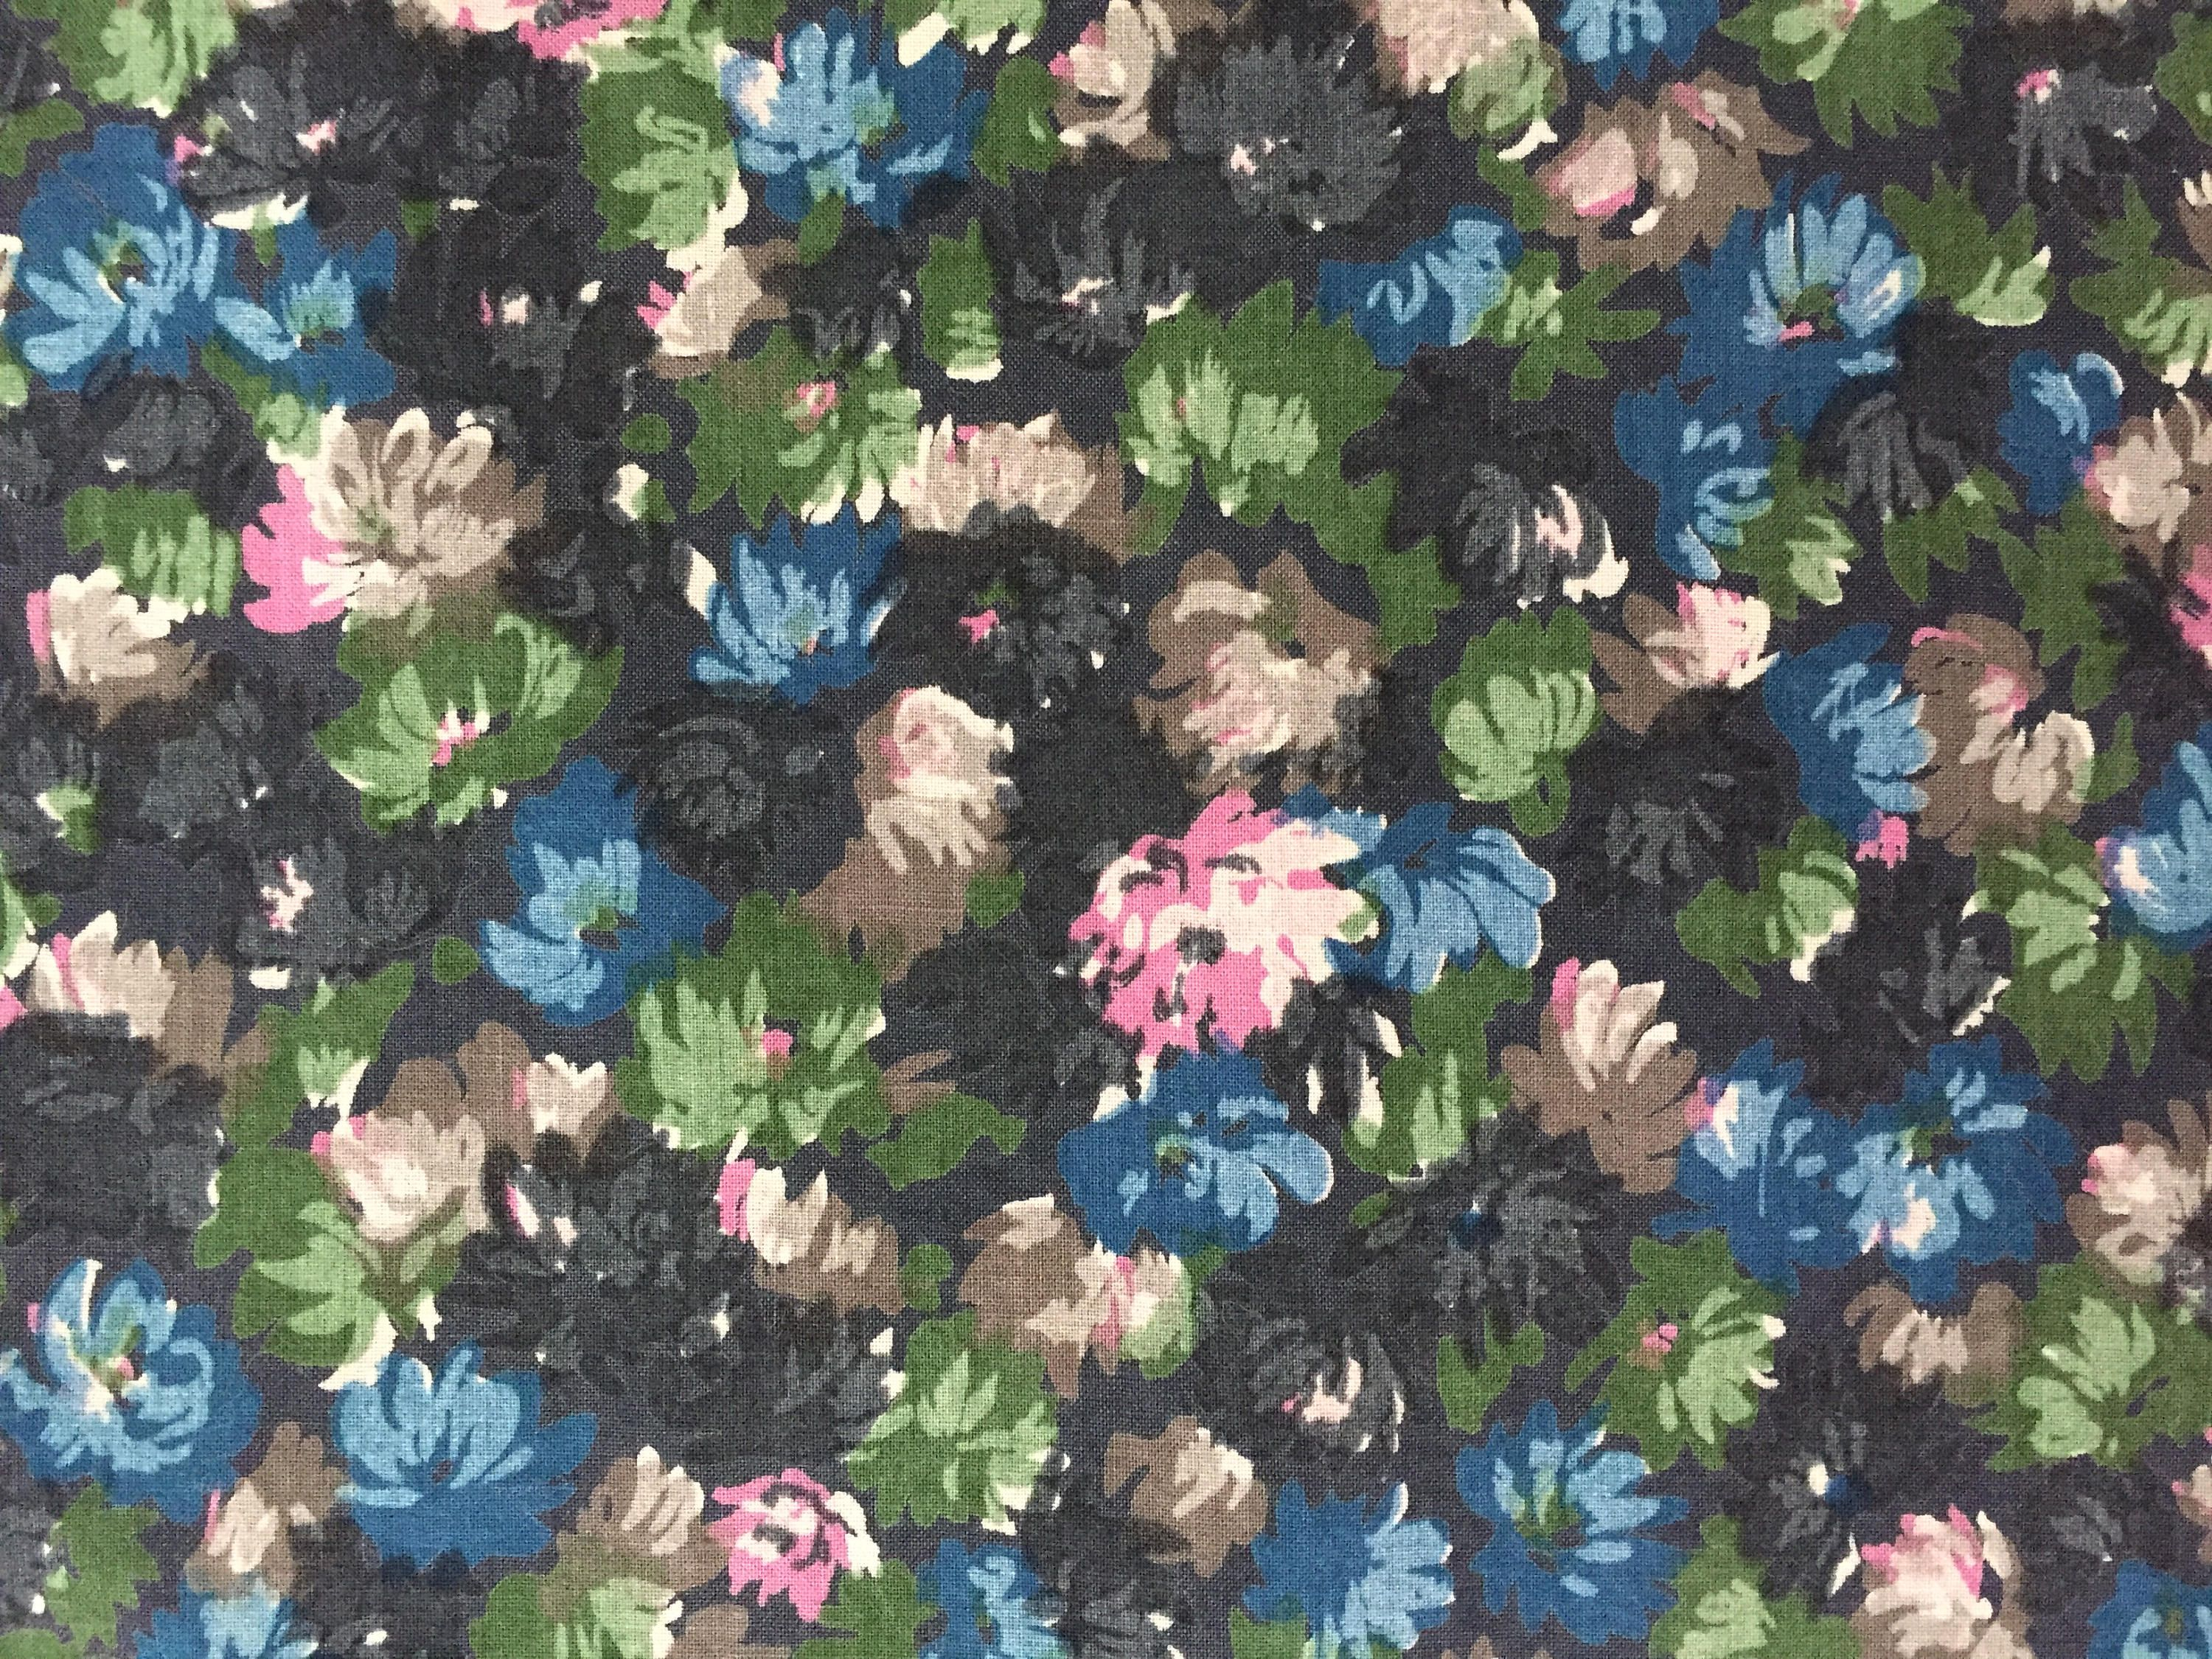 Vintage Floral Cotton Fabric Black Background W Pink Blue And